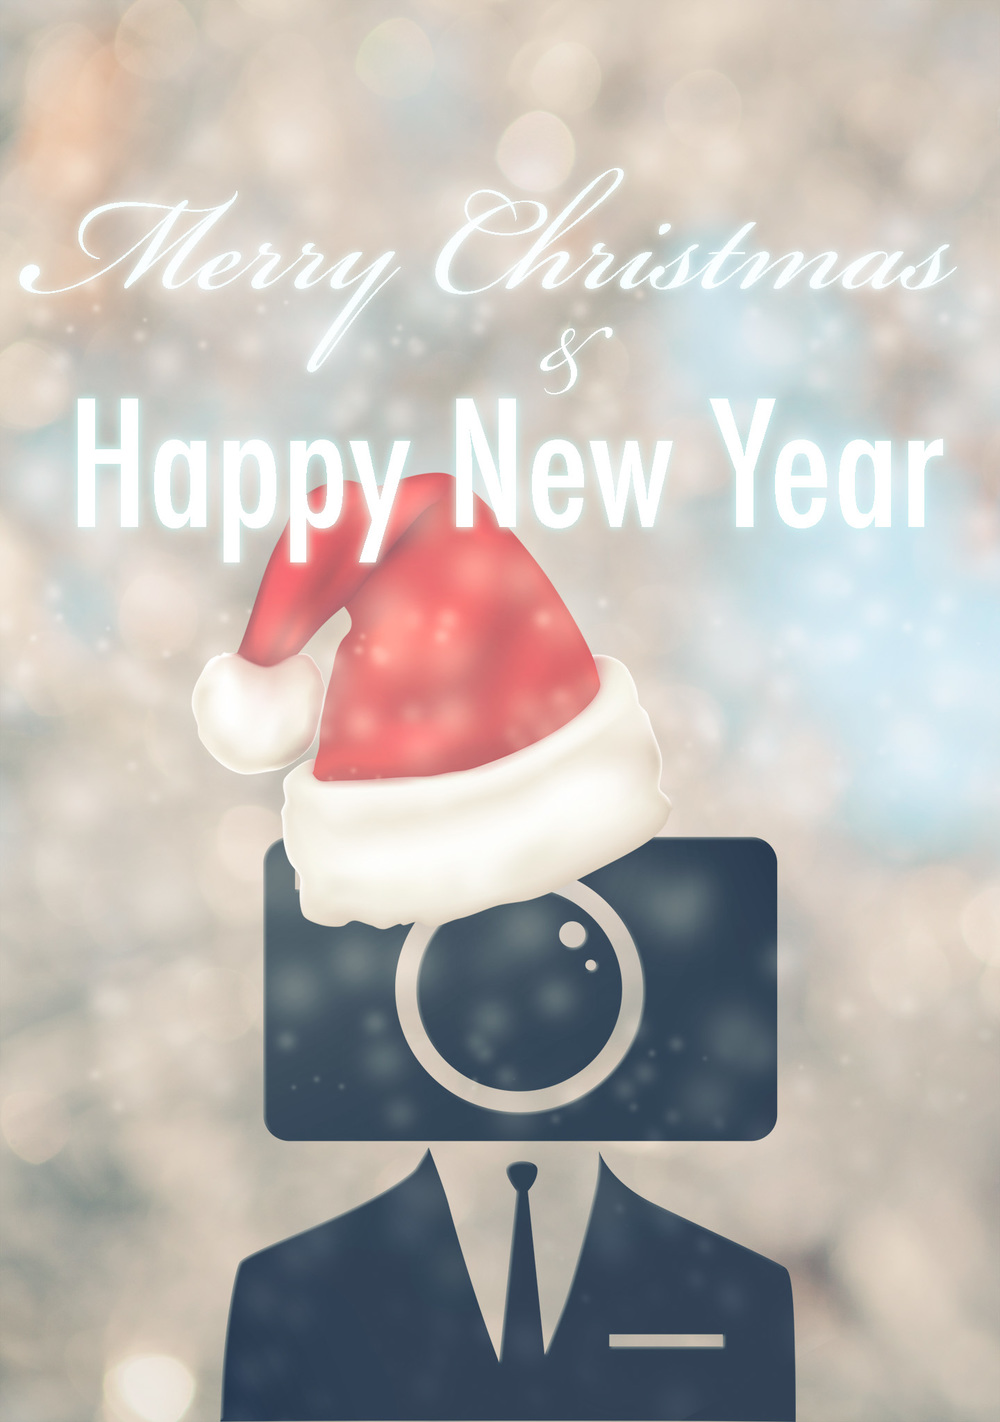 Merry-Christmas-happy-new-year-photo-shayne-gray-bigger-logo.jpg